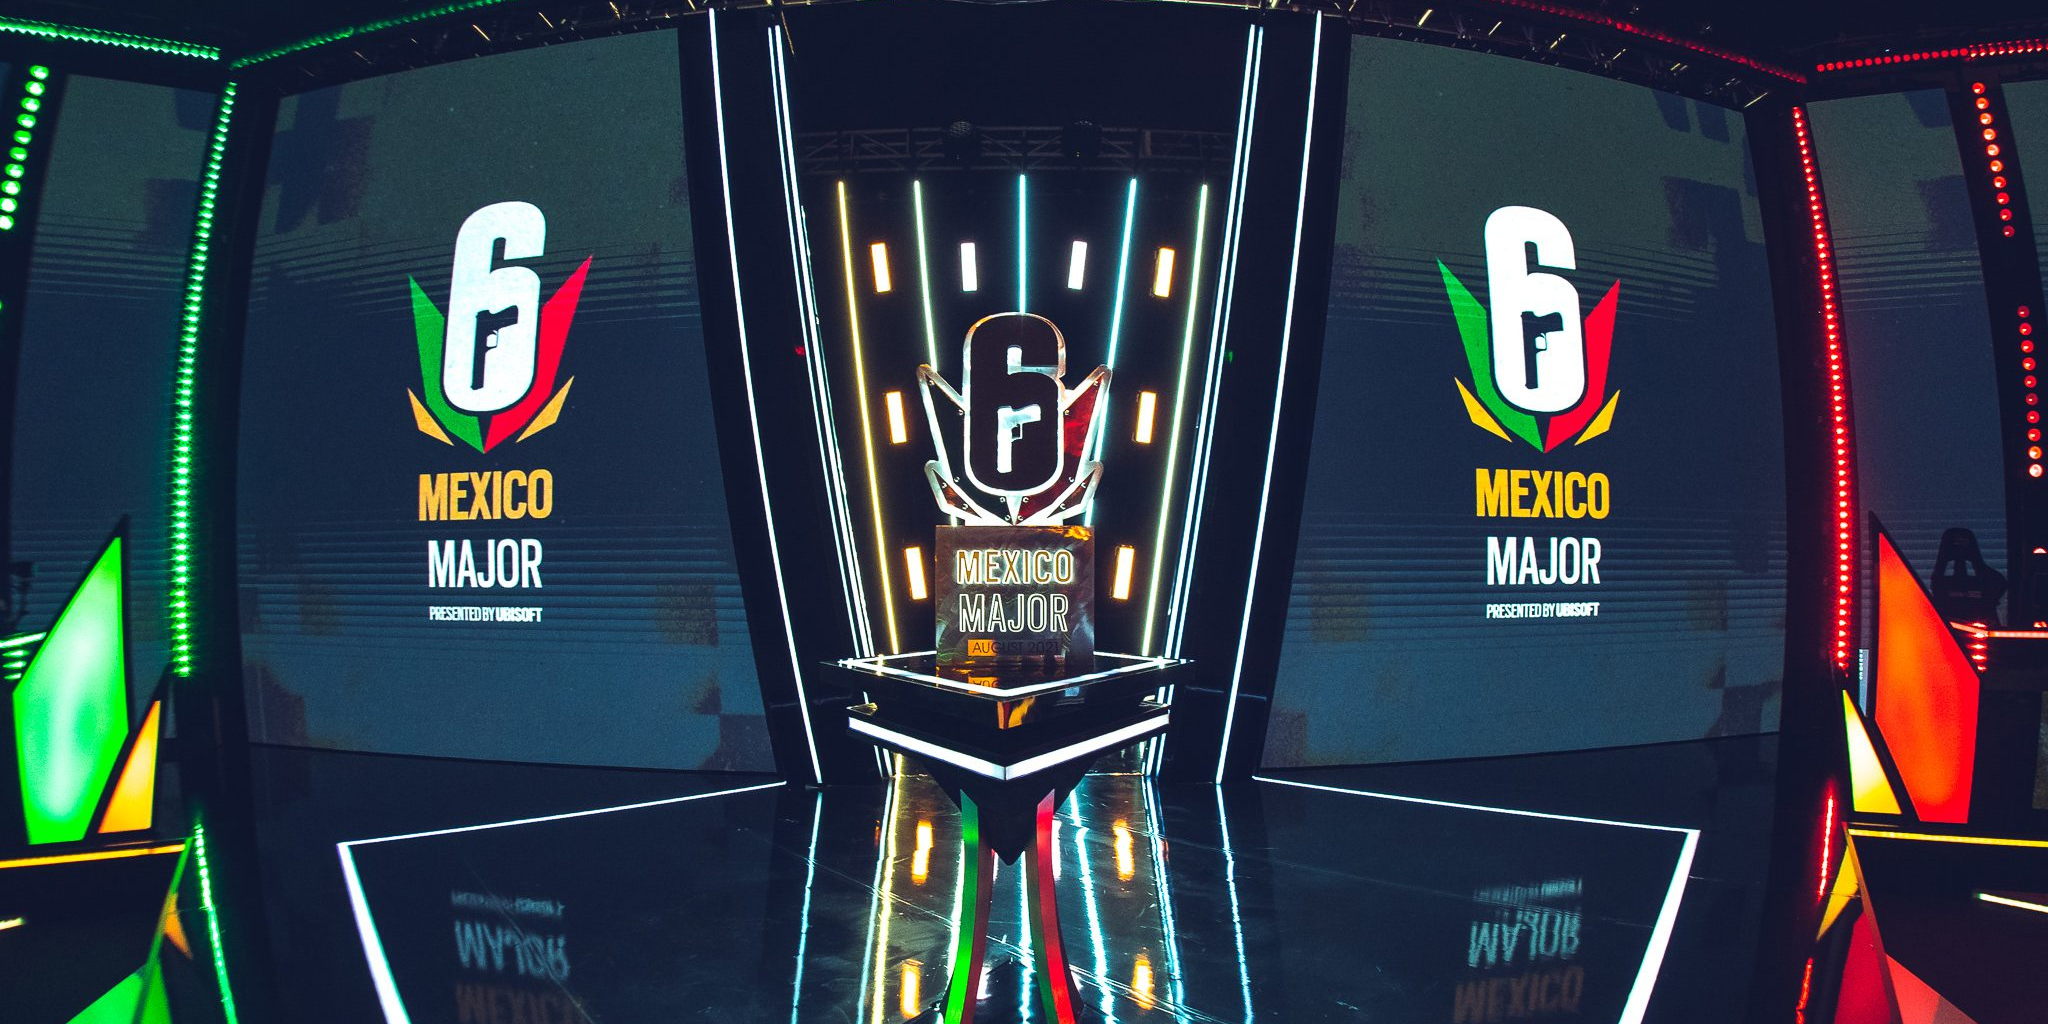 How does the Mexico Major affect the SI 2022 Global Standings?